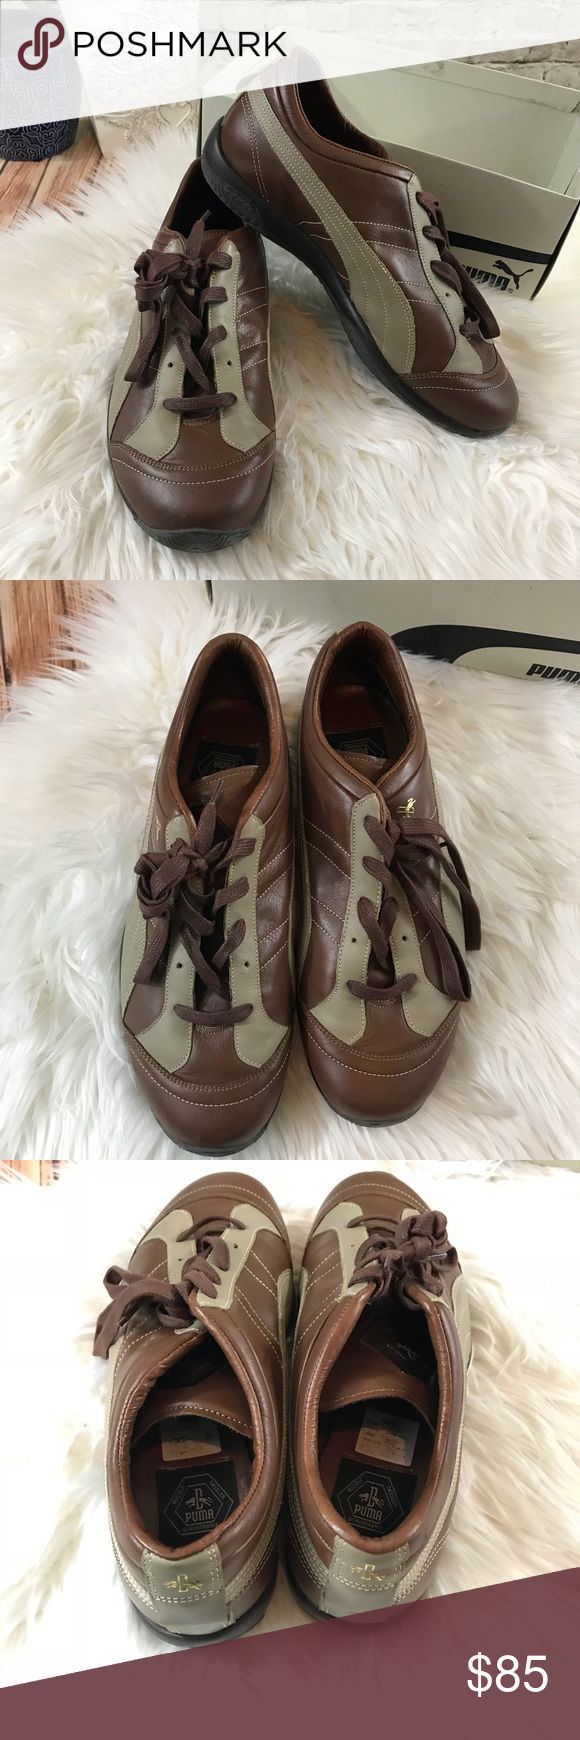 Puma vintage leather sneakers In nearly perfect condition. This puma original shoes sneakers brown with cream combination. Leather soles. Size 10 1/2, original box missing top. Puma Shoes Sneakers